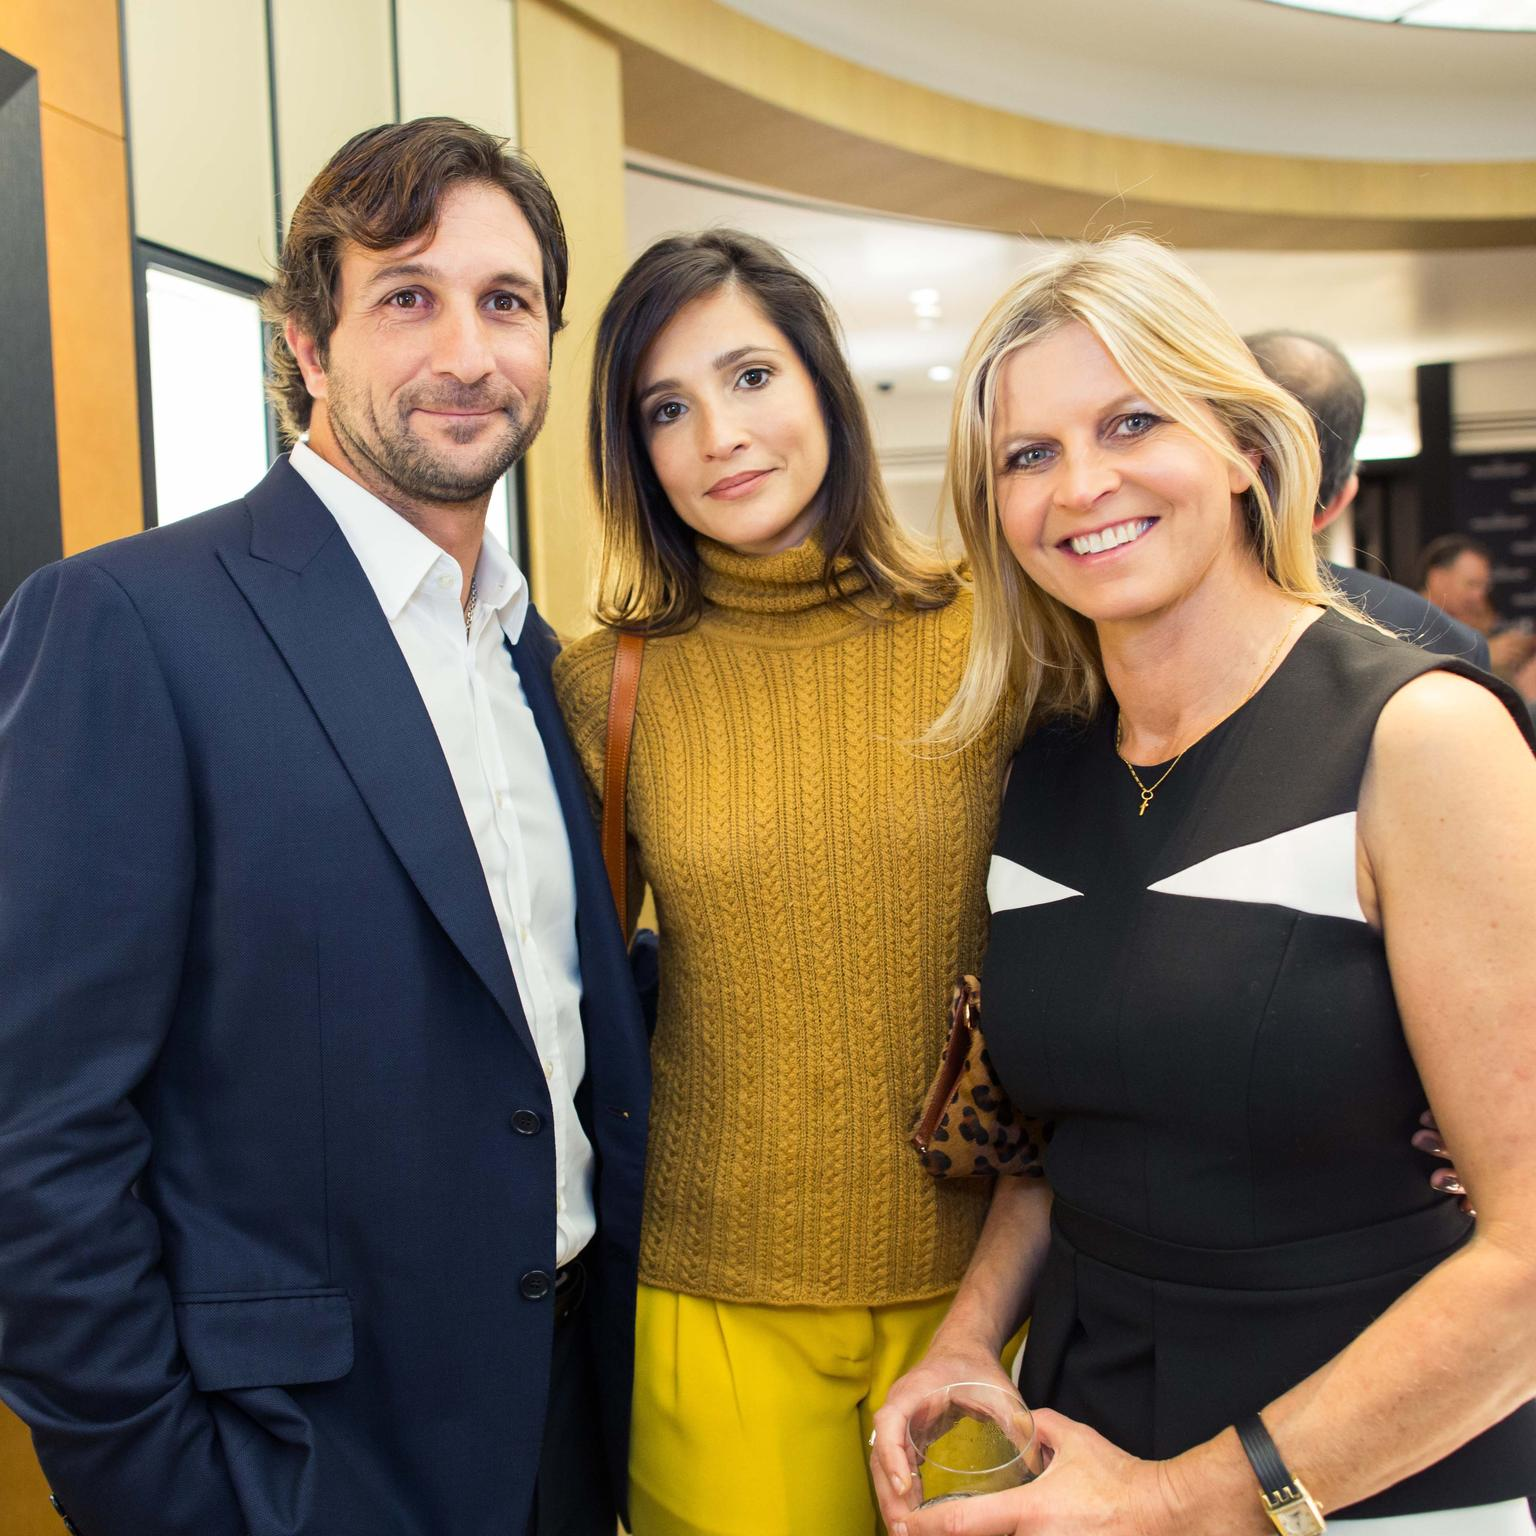 Argentine polo champion Eduardo Novillo Astrada, who features in Jaeger-LeCoultre's new advertising campaign, with his model-turned-photographer wife Astrid Munoz Astrada, and fellow polo player and long-time brand ambassador Clare Mountbatten, Marchiones